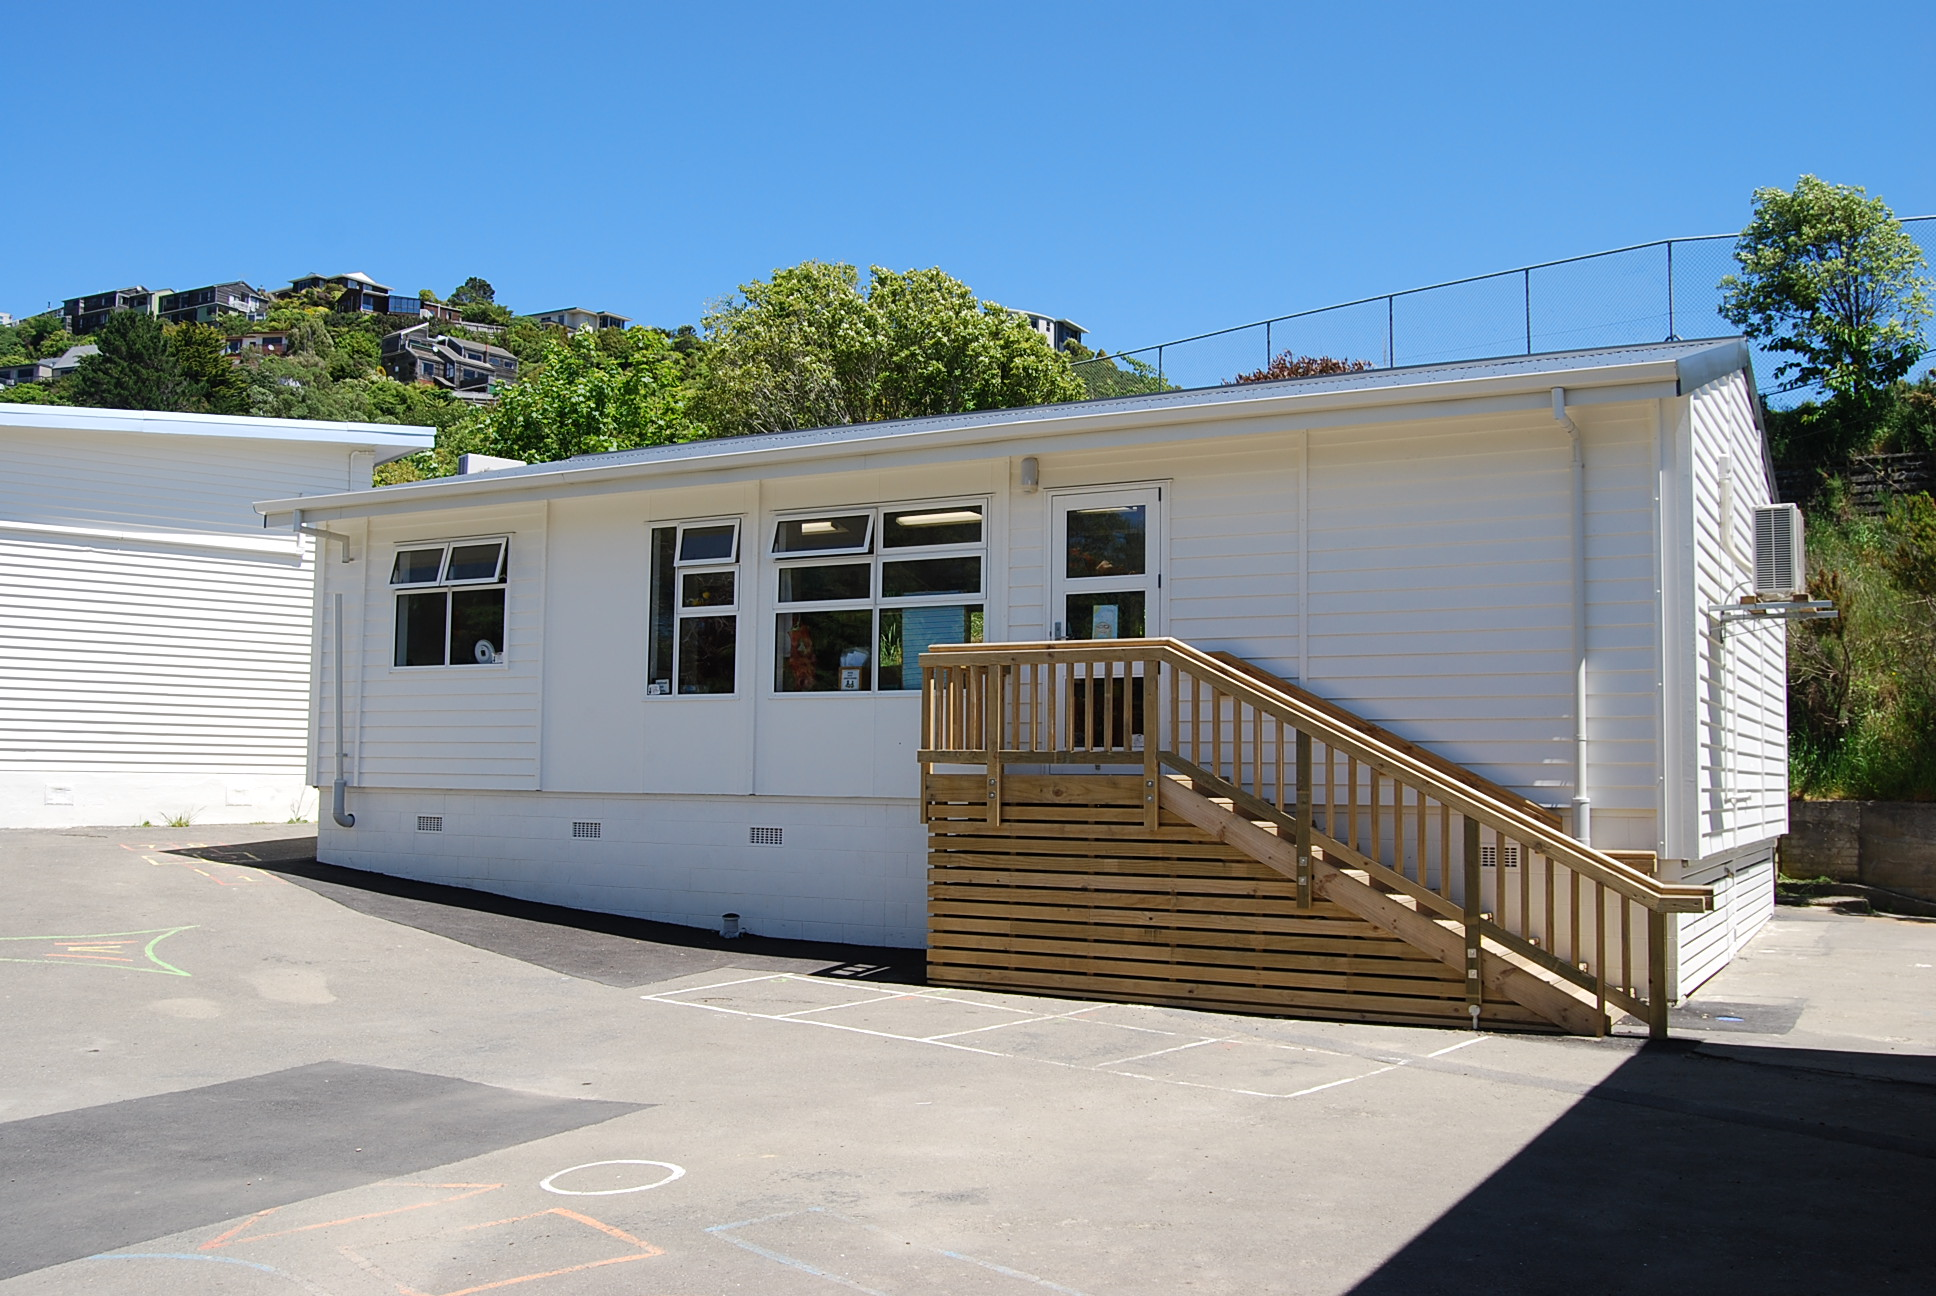 Catholic Schools Expansion Programme   S&T delivered the Catholic Schools Expansion Programme across nine sites. The project required the design, consent, fabrication and installation of a variety of classrooms and resource rooms within a five month period.